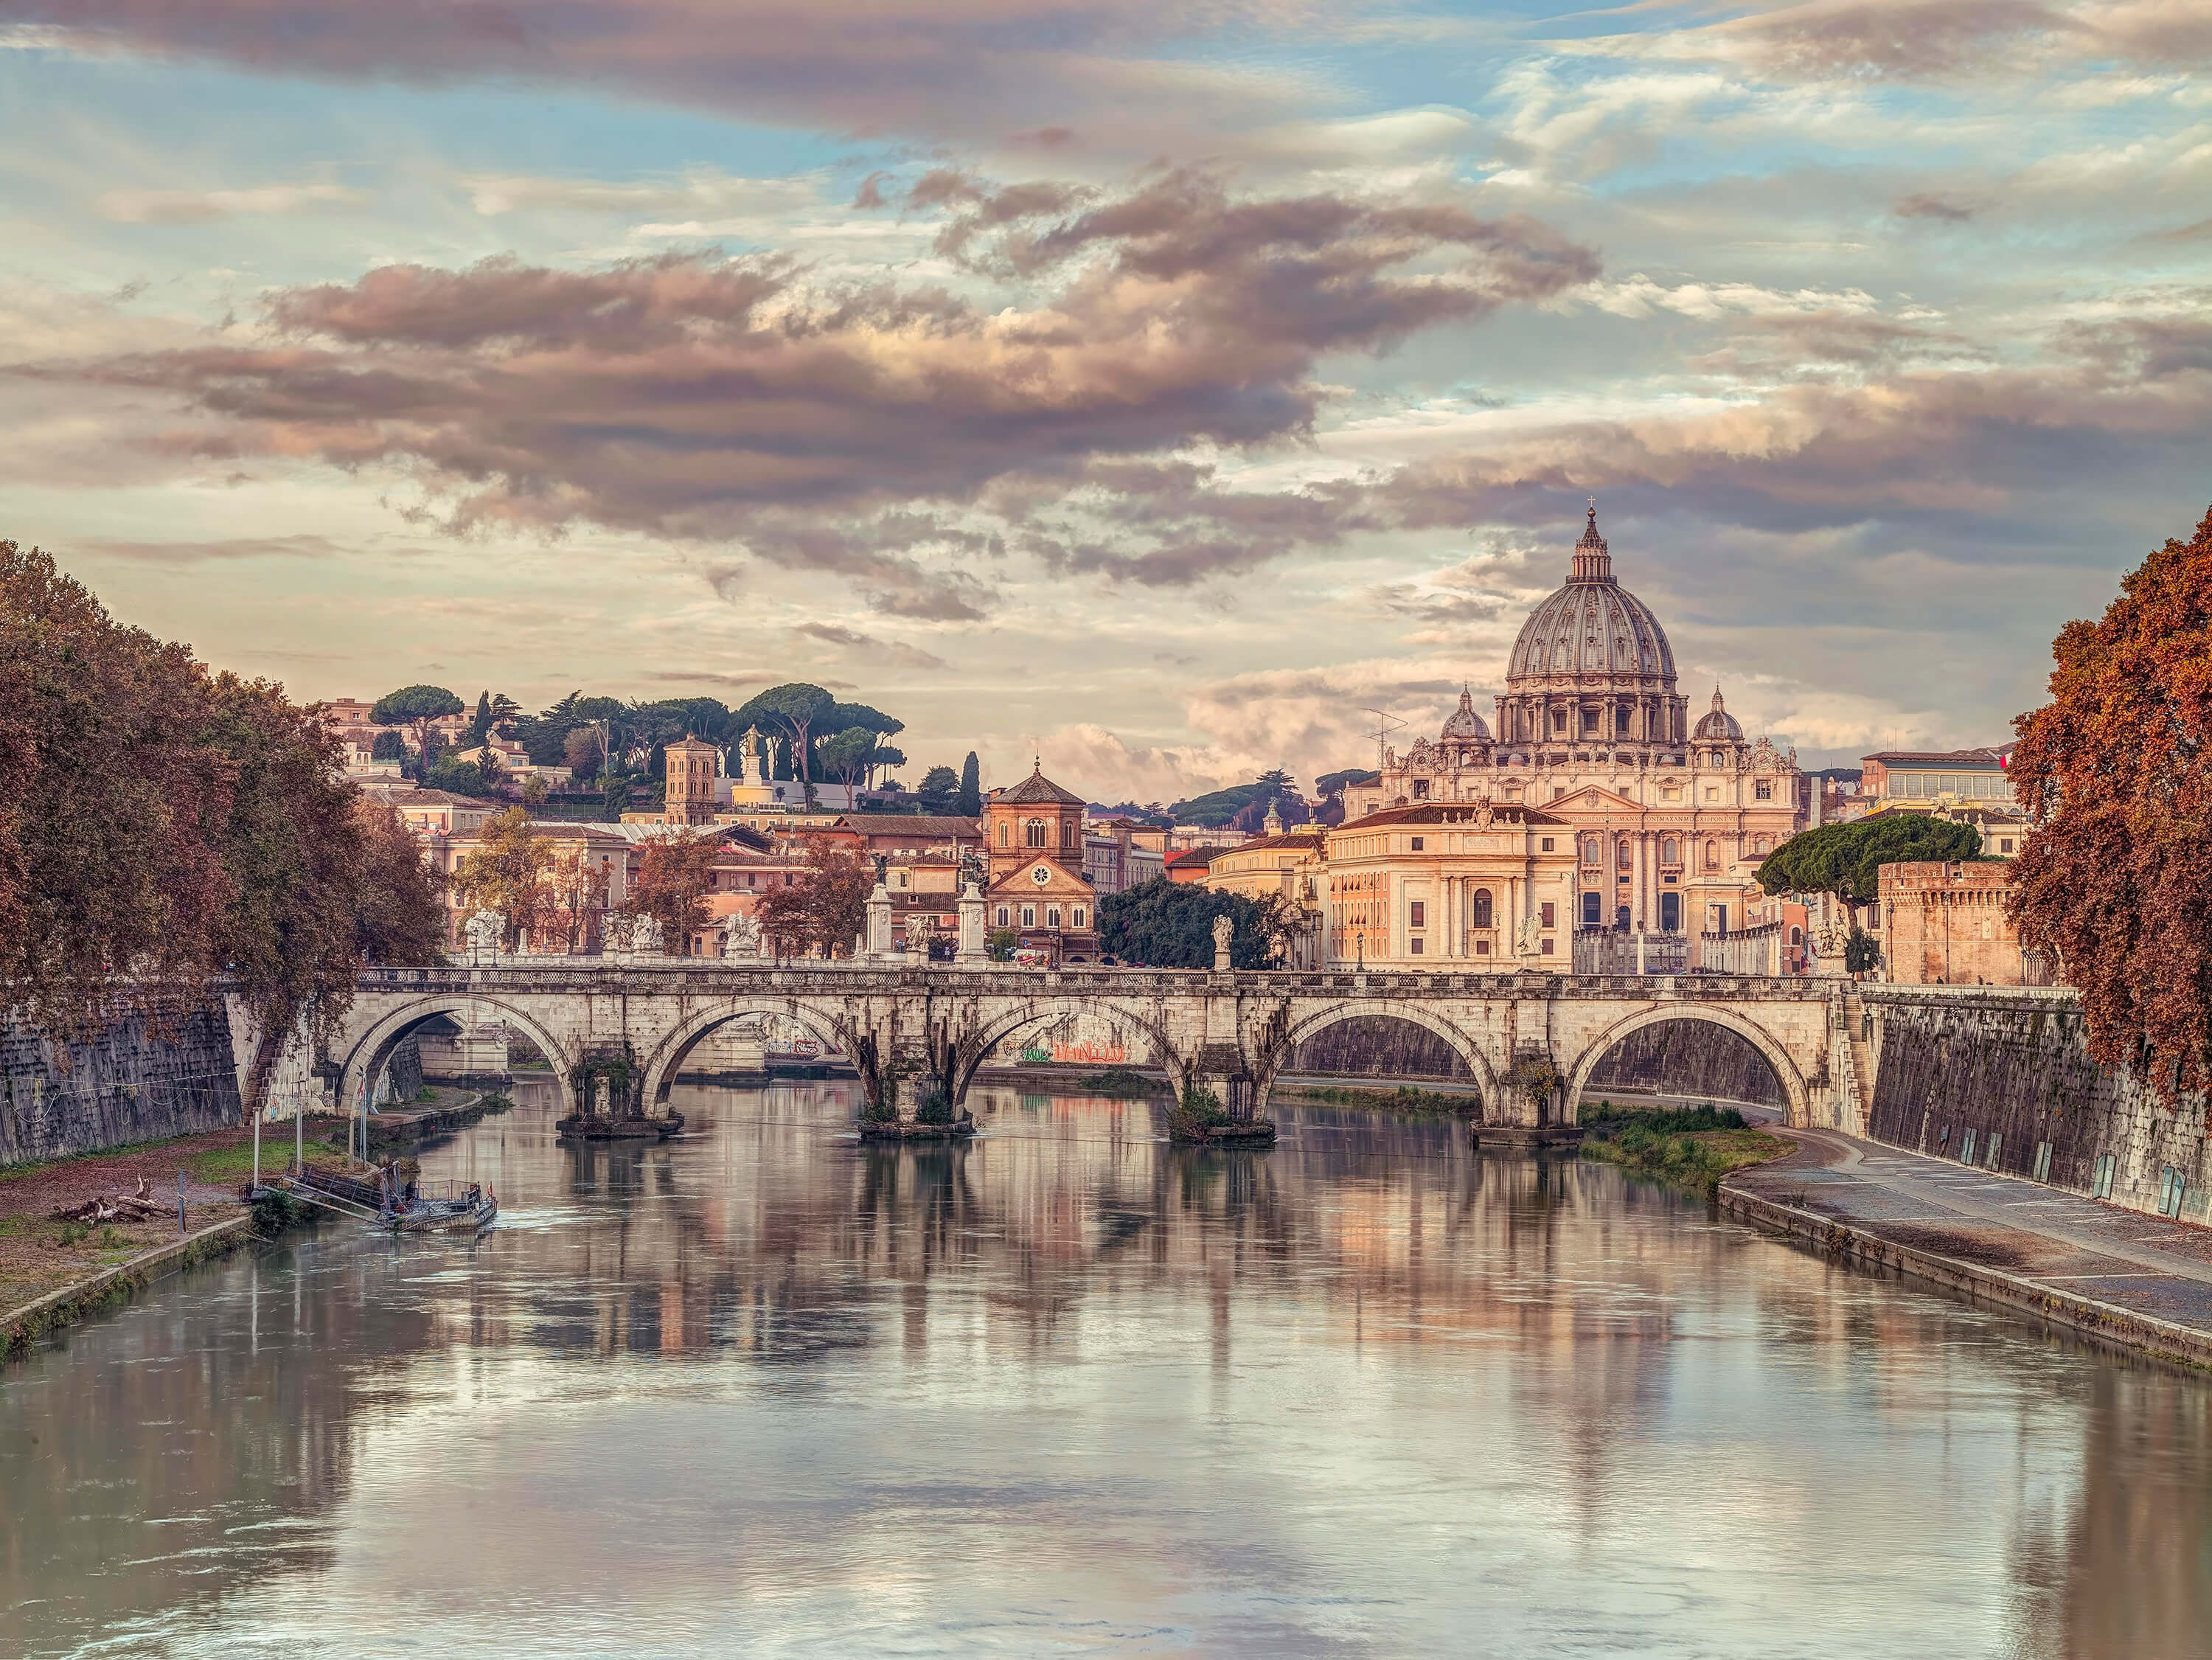 St Peter's Basilica by day